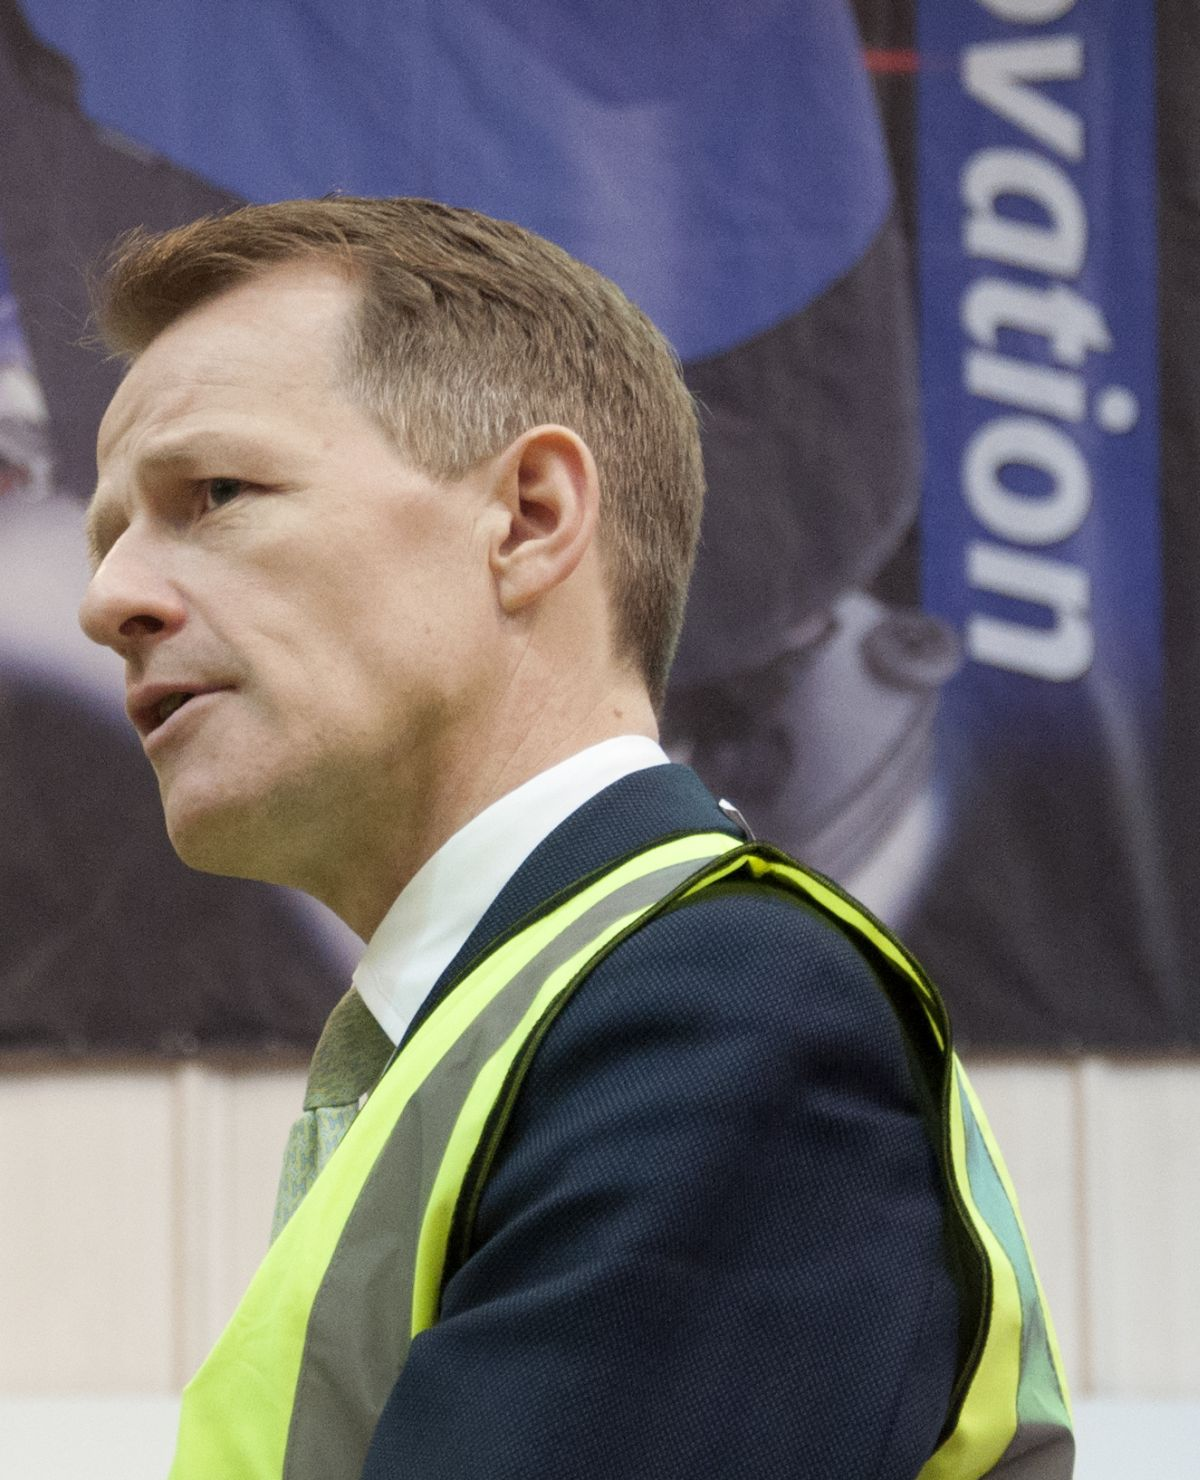 DAVID Laws MP during his visit to Numatic.